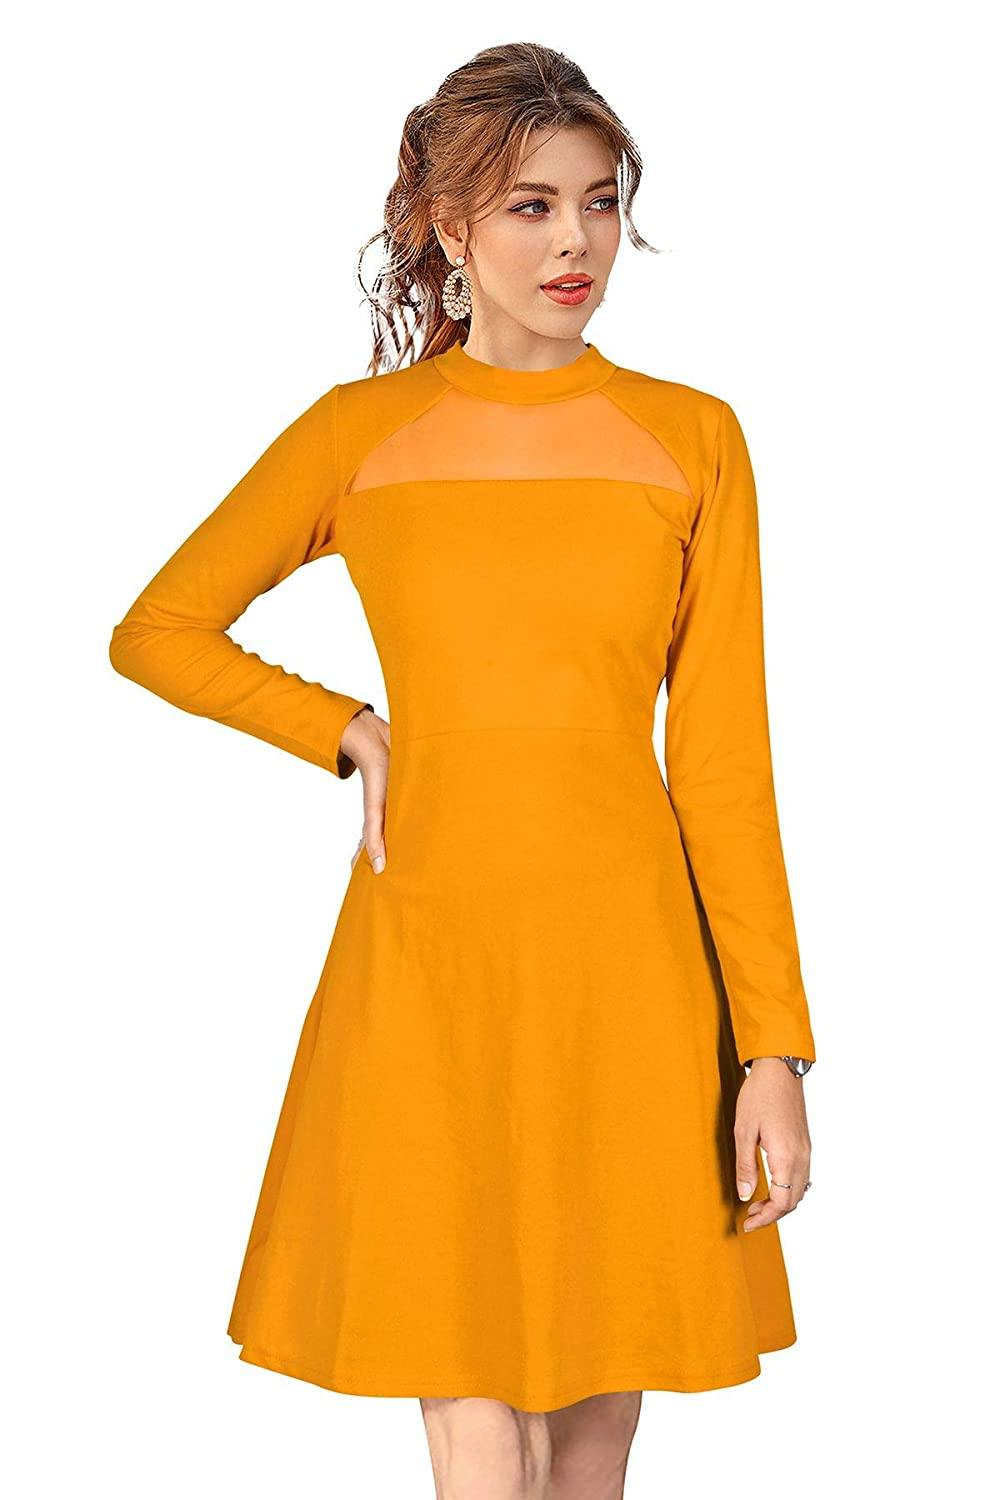 Kwirfy Western Knee Length Midi Dress - Kwirfy  - 2021 western dress, isha western dress, new, wester, western 2021, western dress, western suit, western top